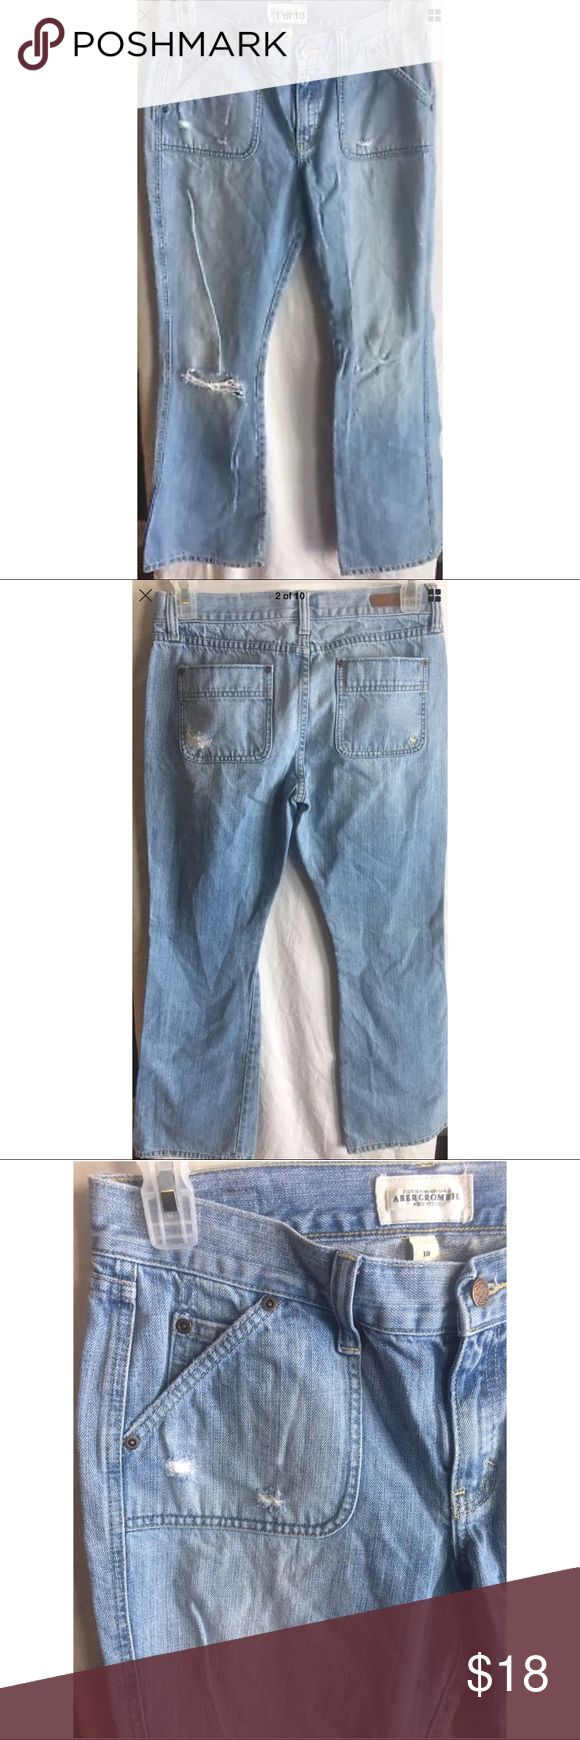 """Abercrombie & Fitch Women Distressed Jeans Size 10 Abercrombie & Fitch women's distressed flare jeans size 10  SKU: 55147510 Measurements-  Waist: 33""""  Rise: 9""""  Inseam: 32""""      Buyer please note there is some minor wear on the hems. Please view photos prior to purchase. Thank you!     Customer service is my #1 priority! I strive to not only meet, but to exceed the standard. If for any reason you are unhappy with your order, I will make it right!    Thank you for supporting small business!"""